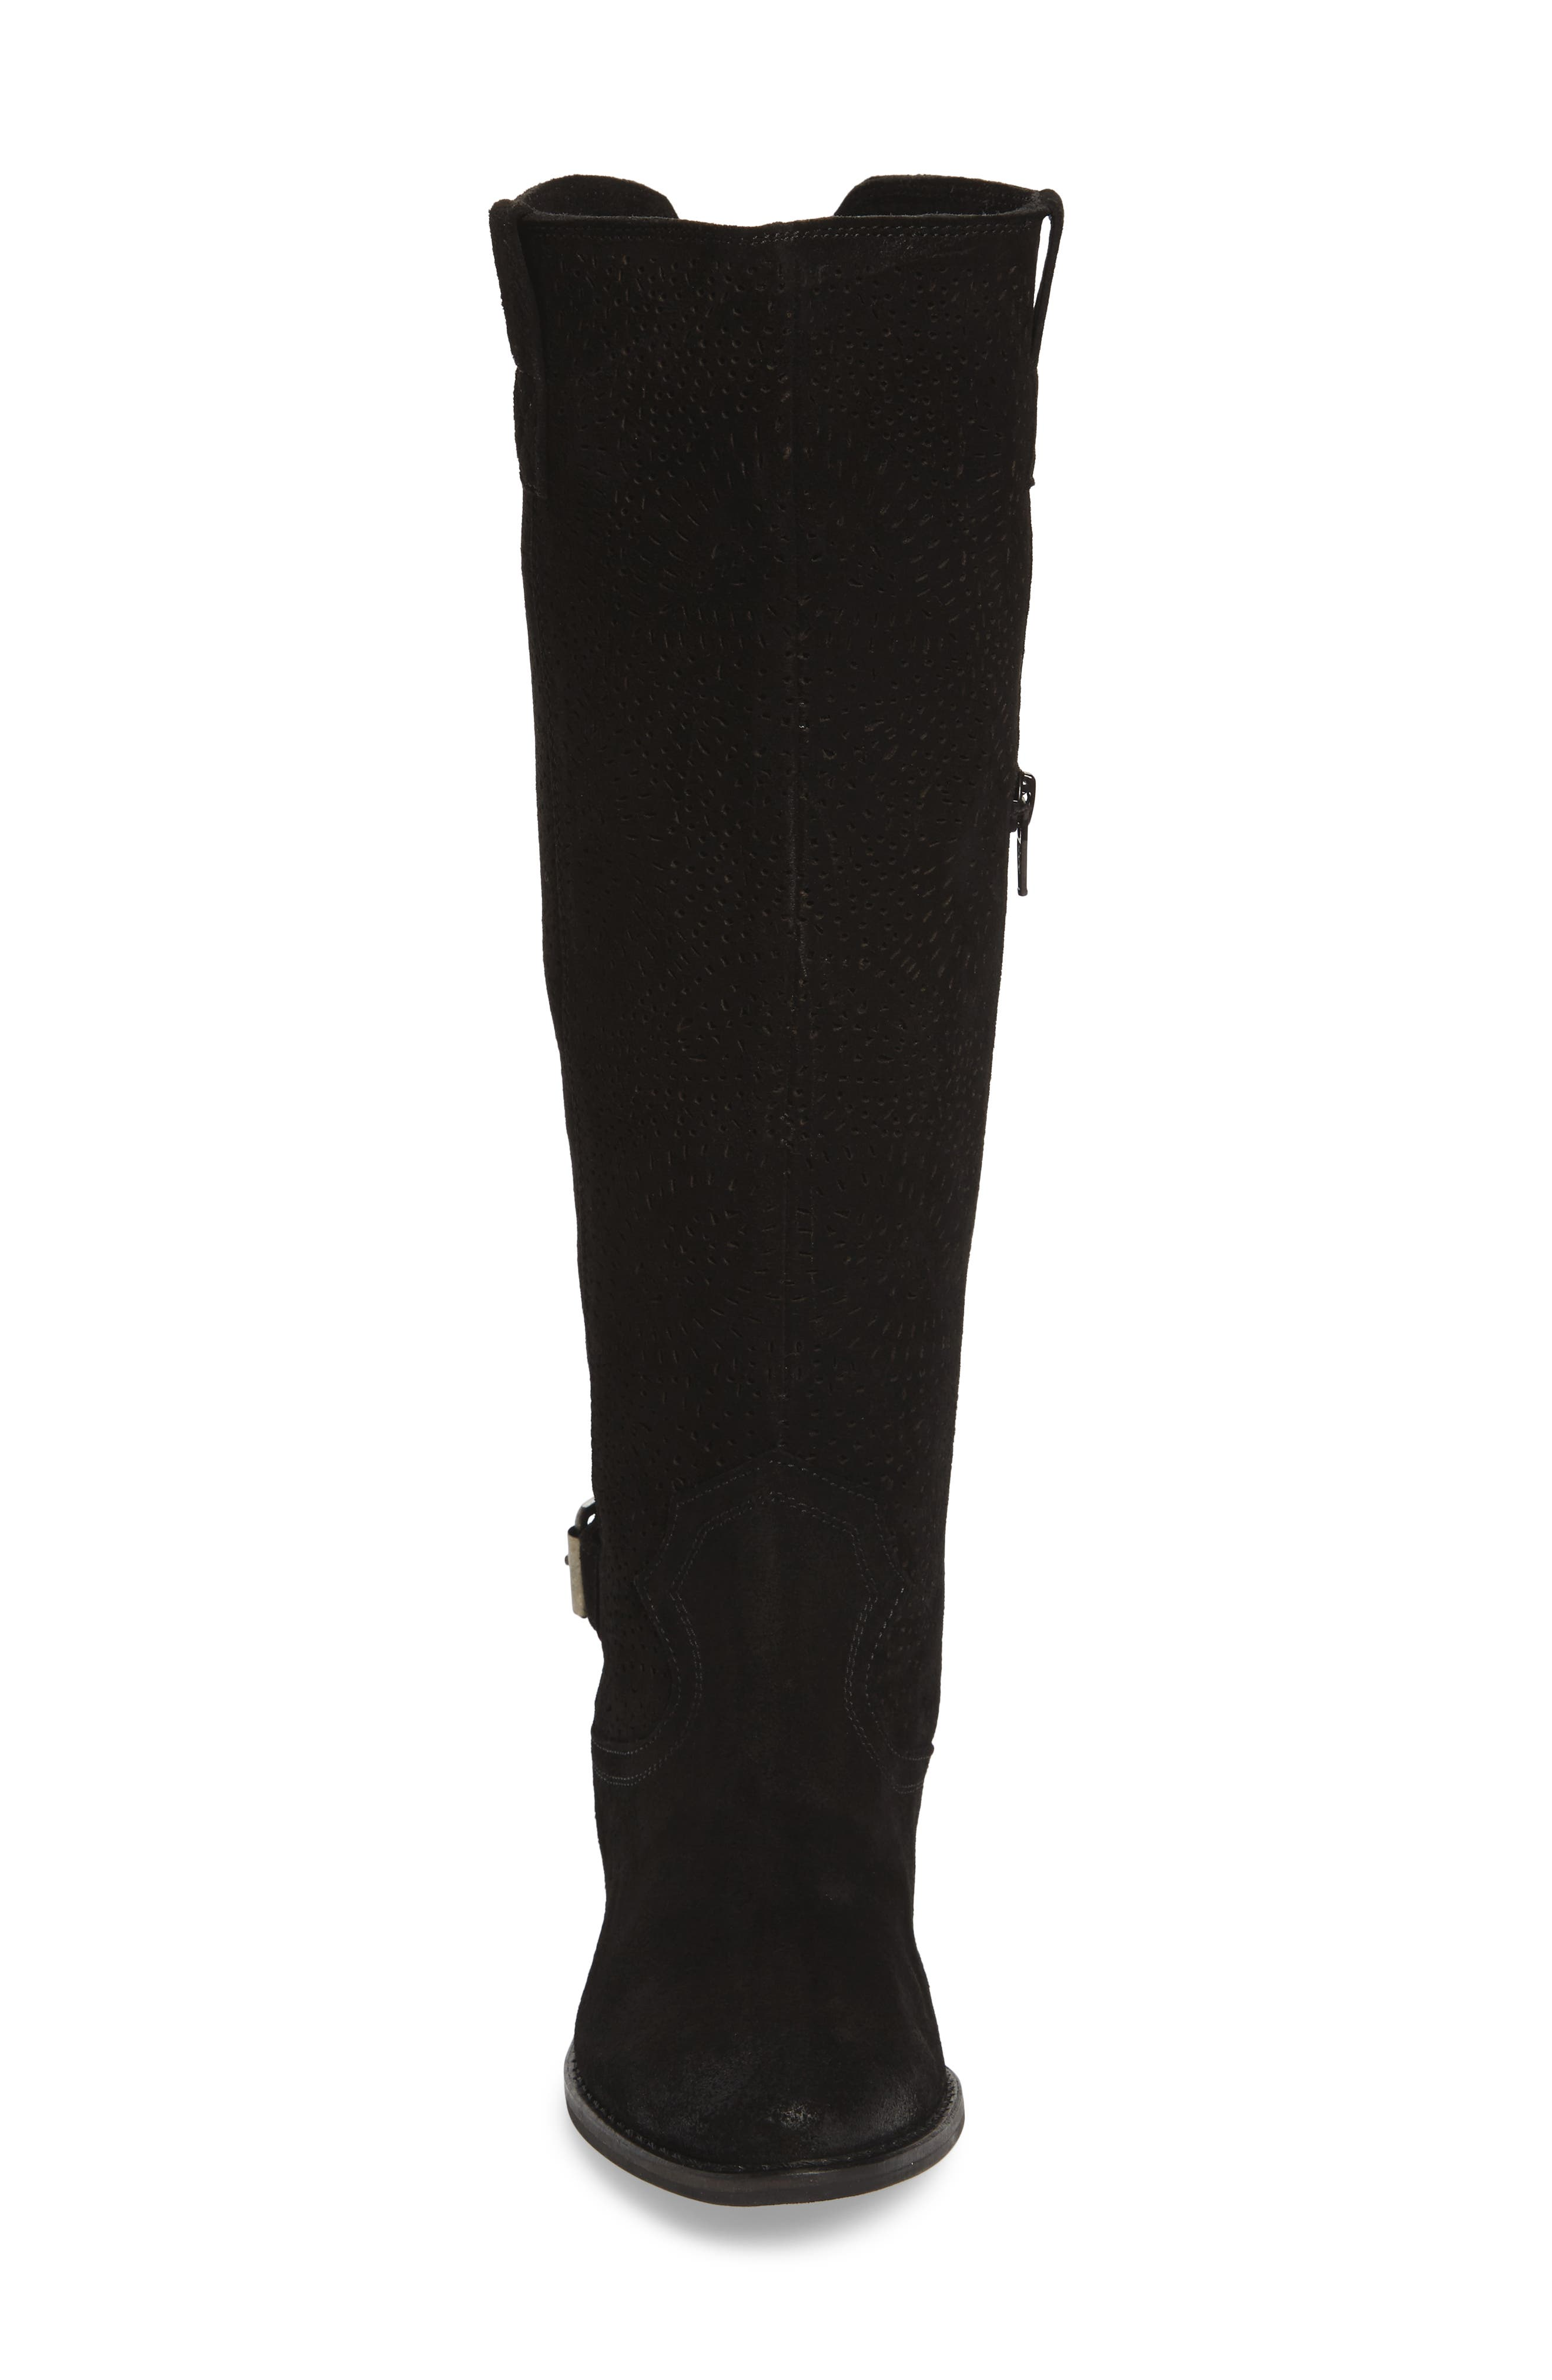 Ziba Tall Boot,                             Alternate thumbnail 4, color,                             Black Suede